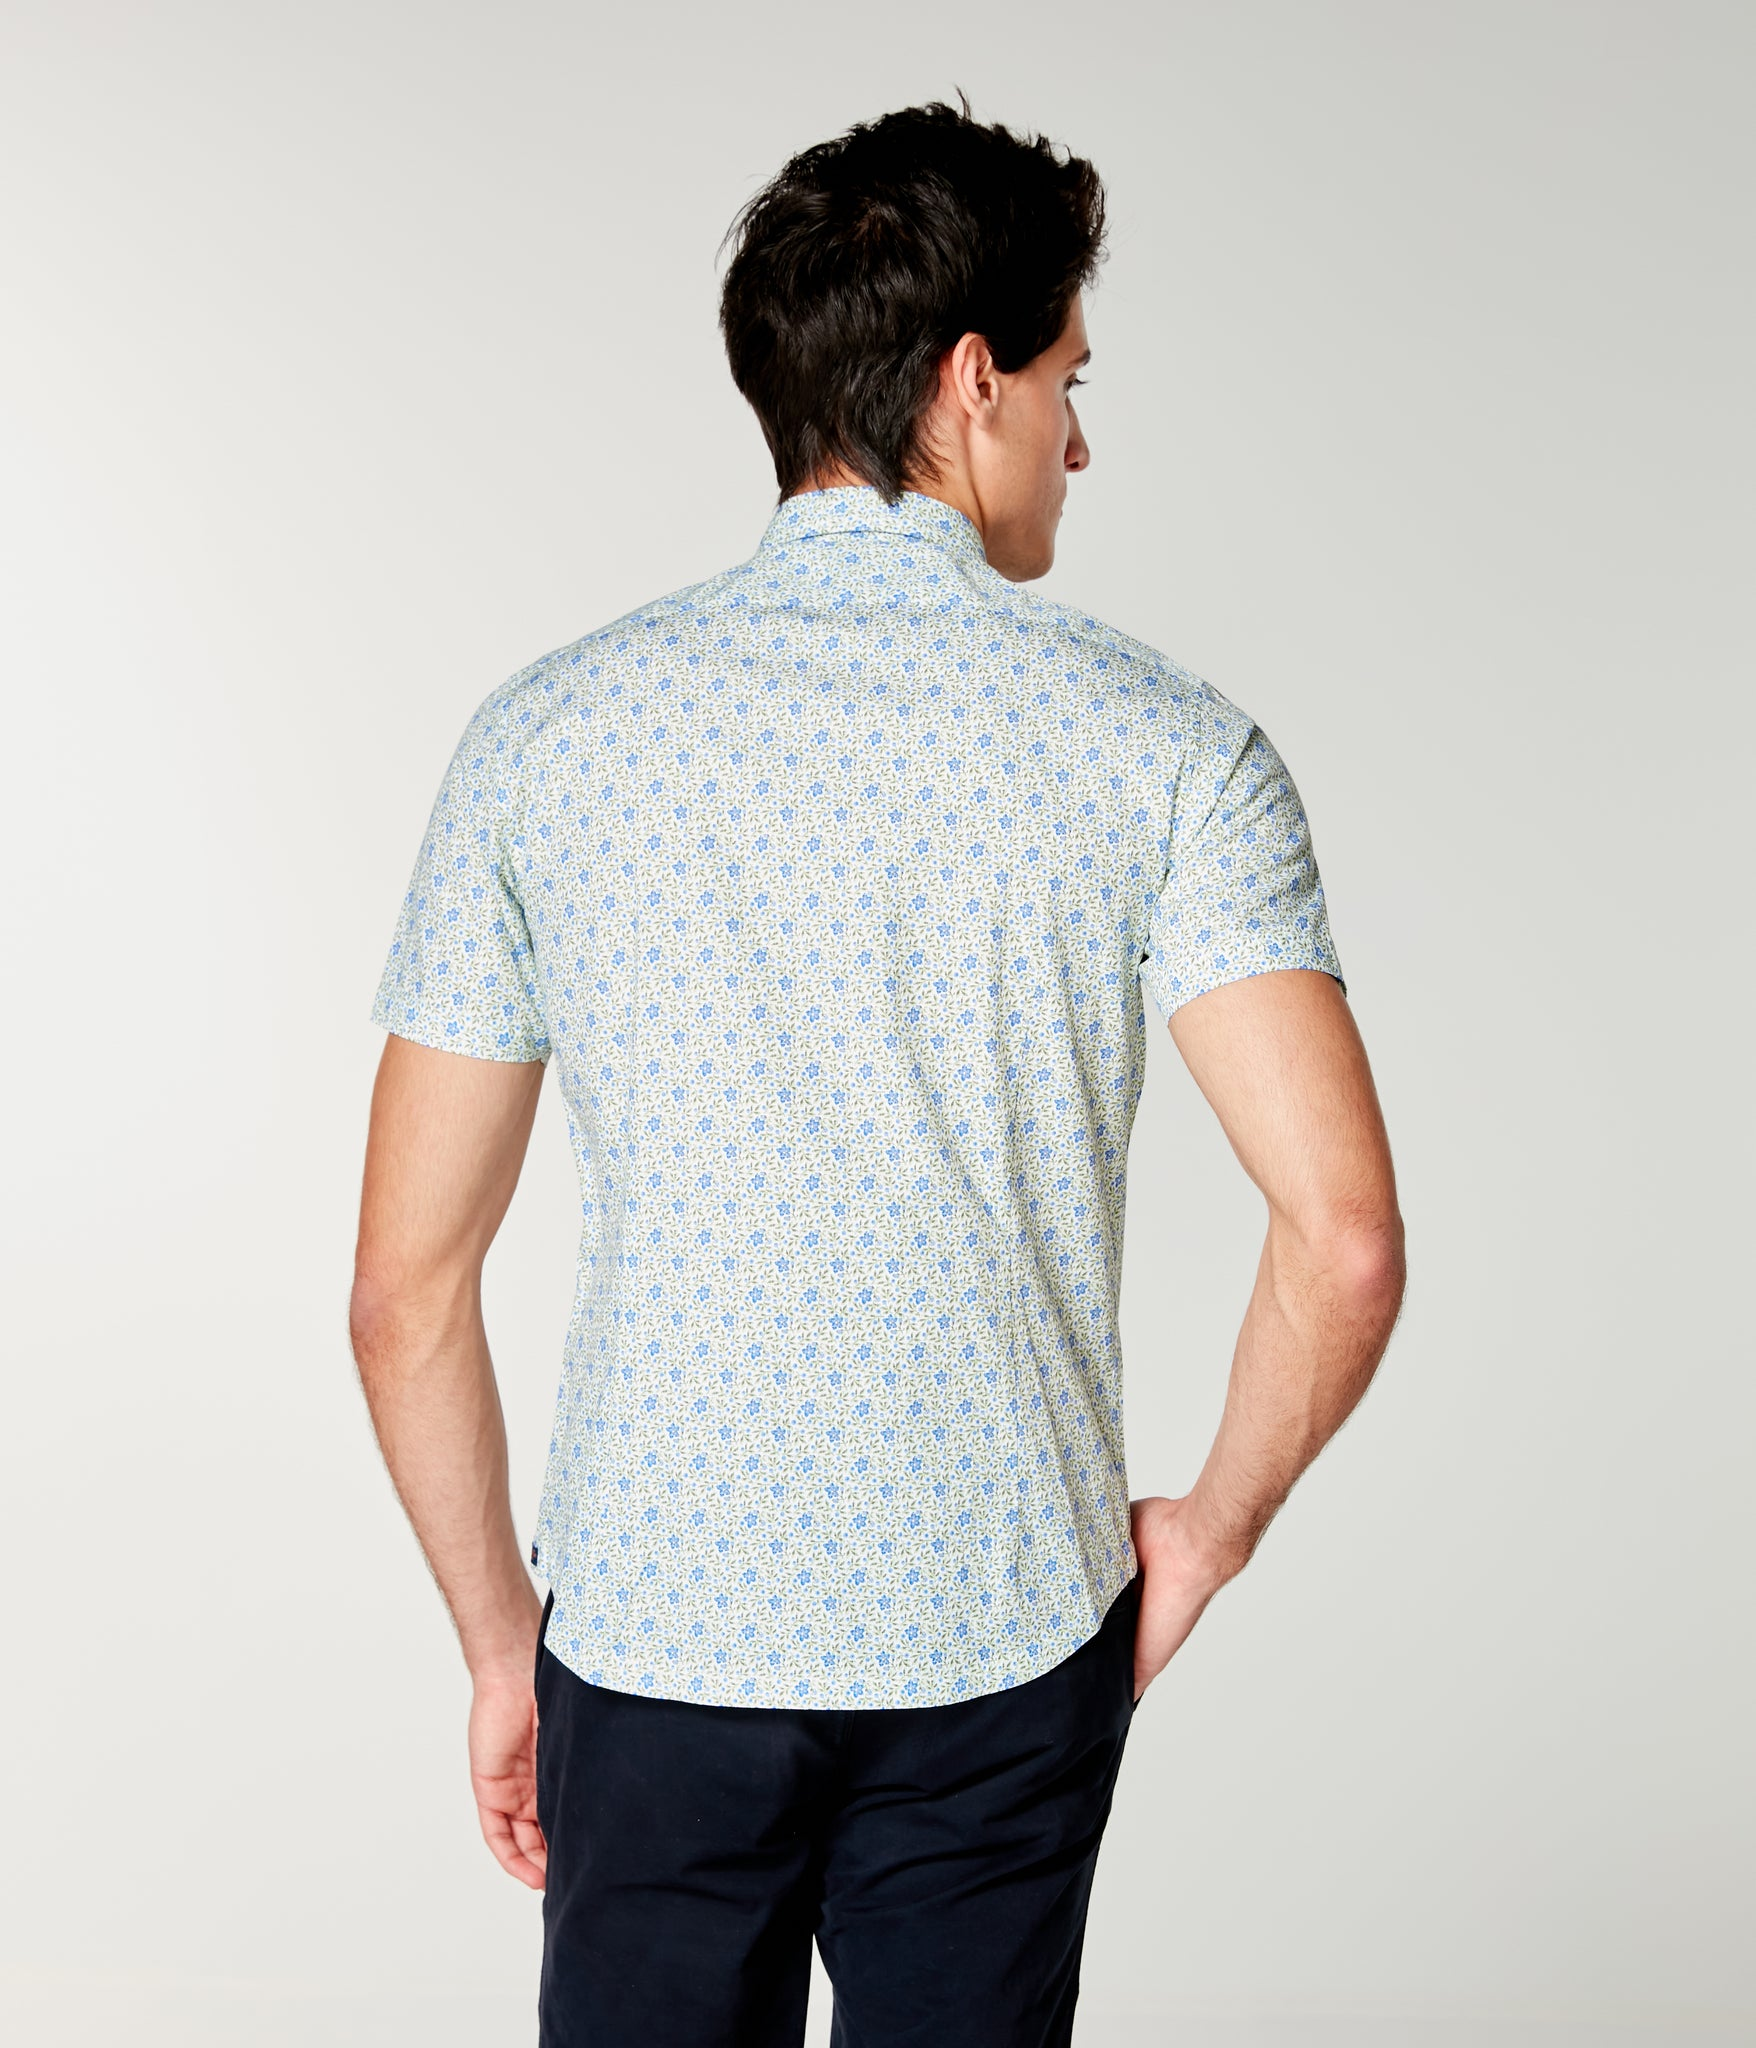 On-Point Print Shirt Short Sleeve - Blue Daisy